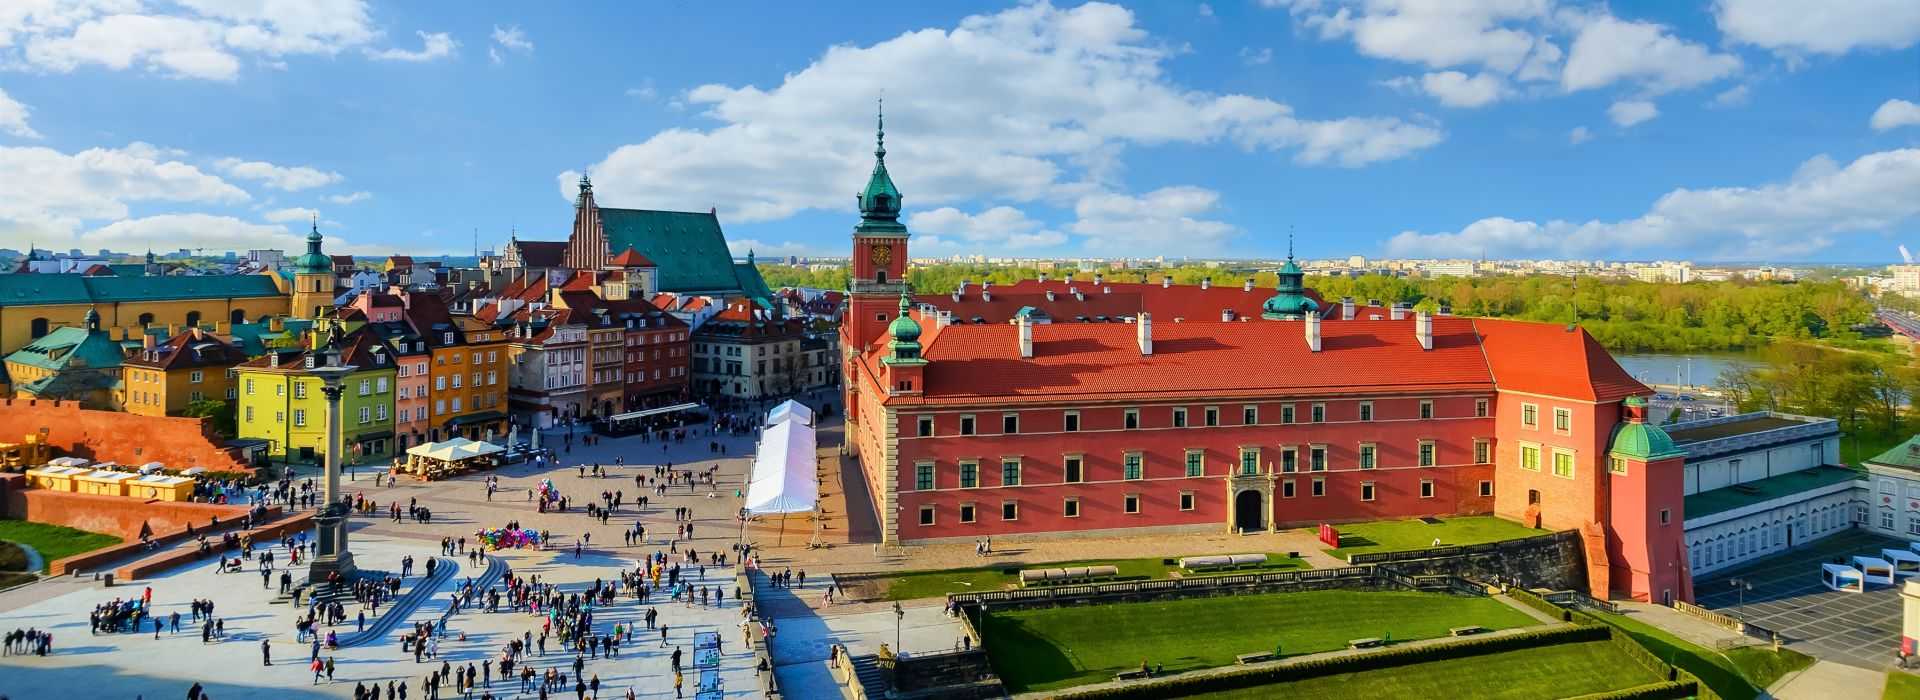 Travelling Poland – Tours and Holiday Packages in Poland